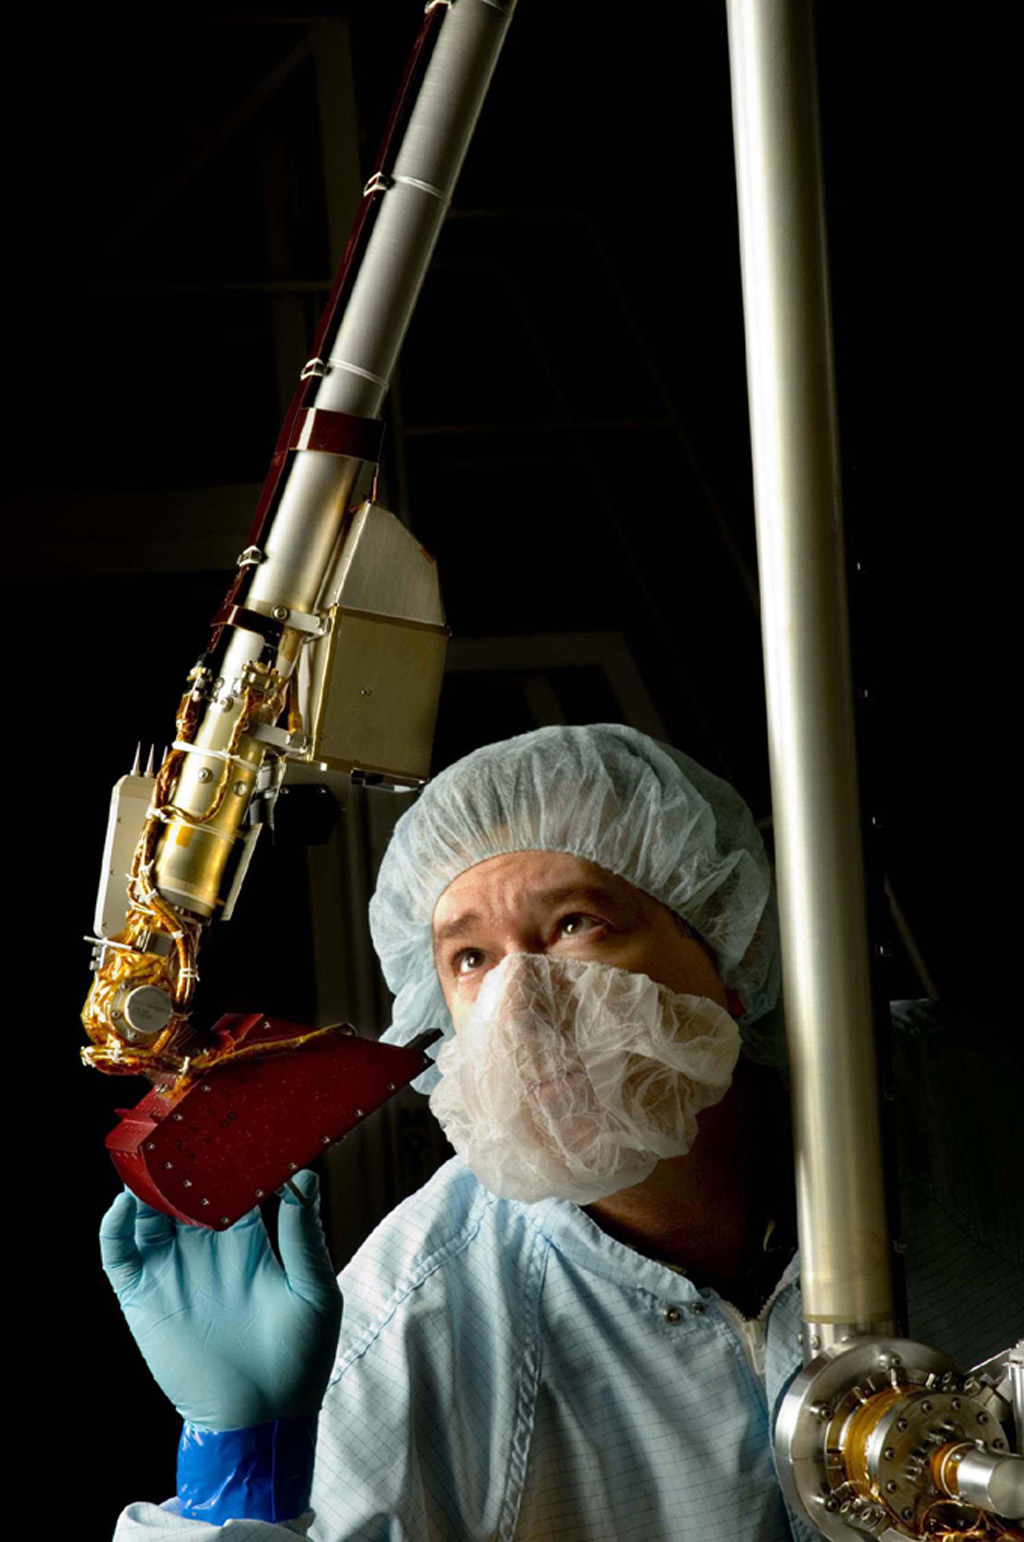 A spacecraft technician inspected the vital robotic arm of NASA's Phoenix Mars Lander during the assembly phase of the mission